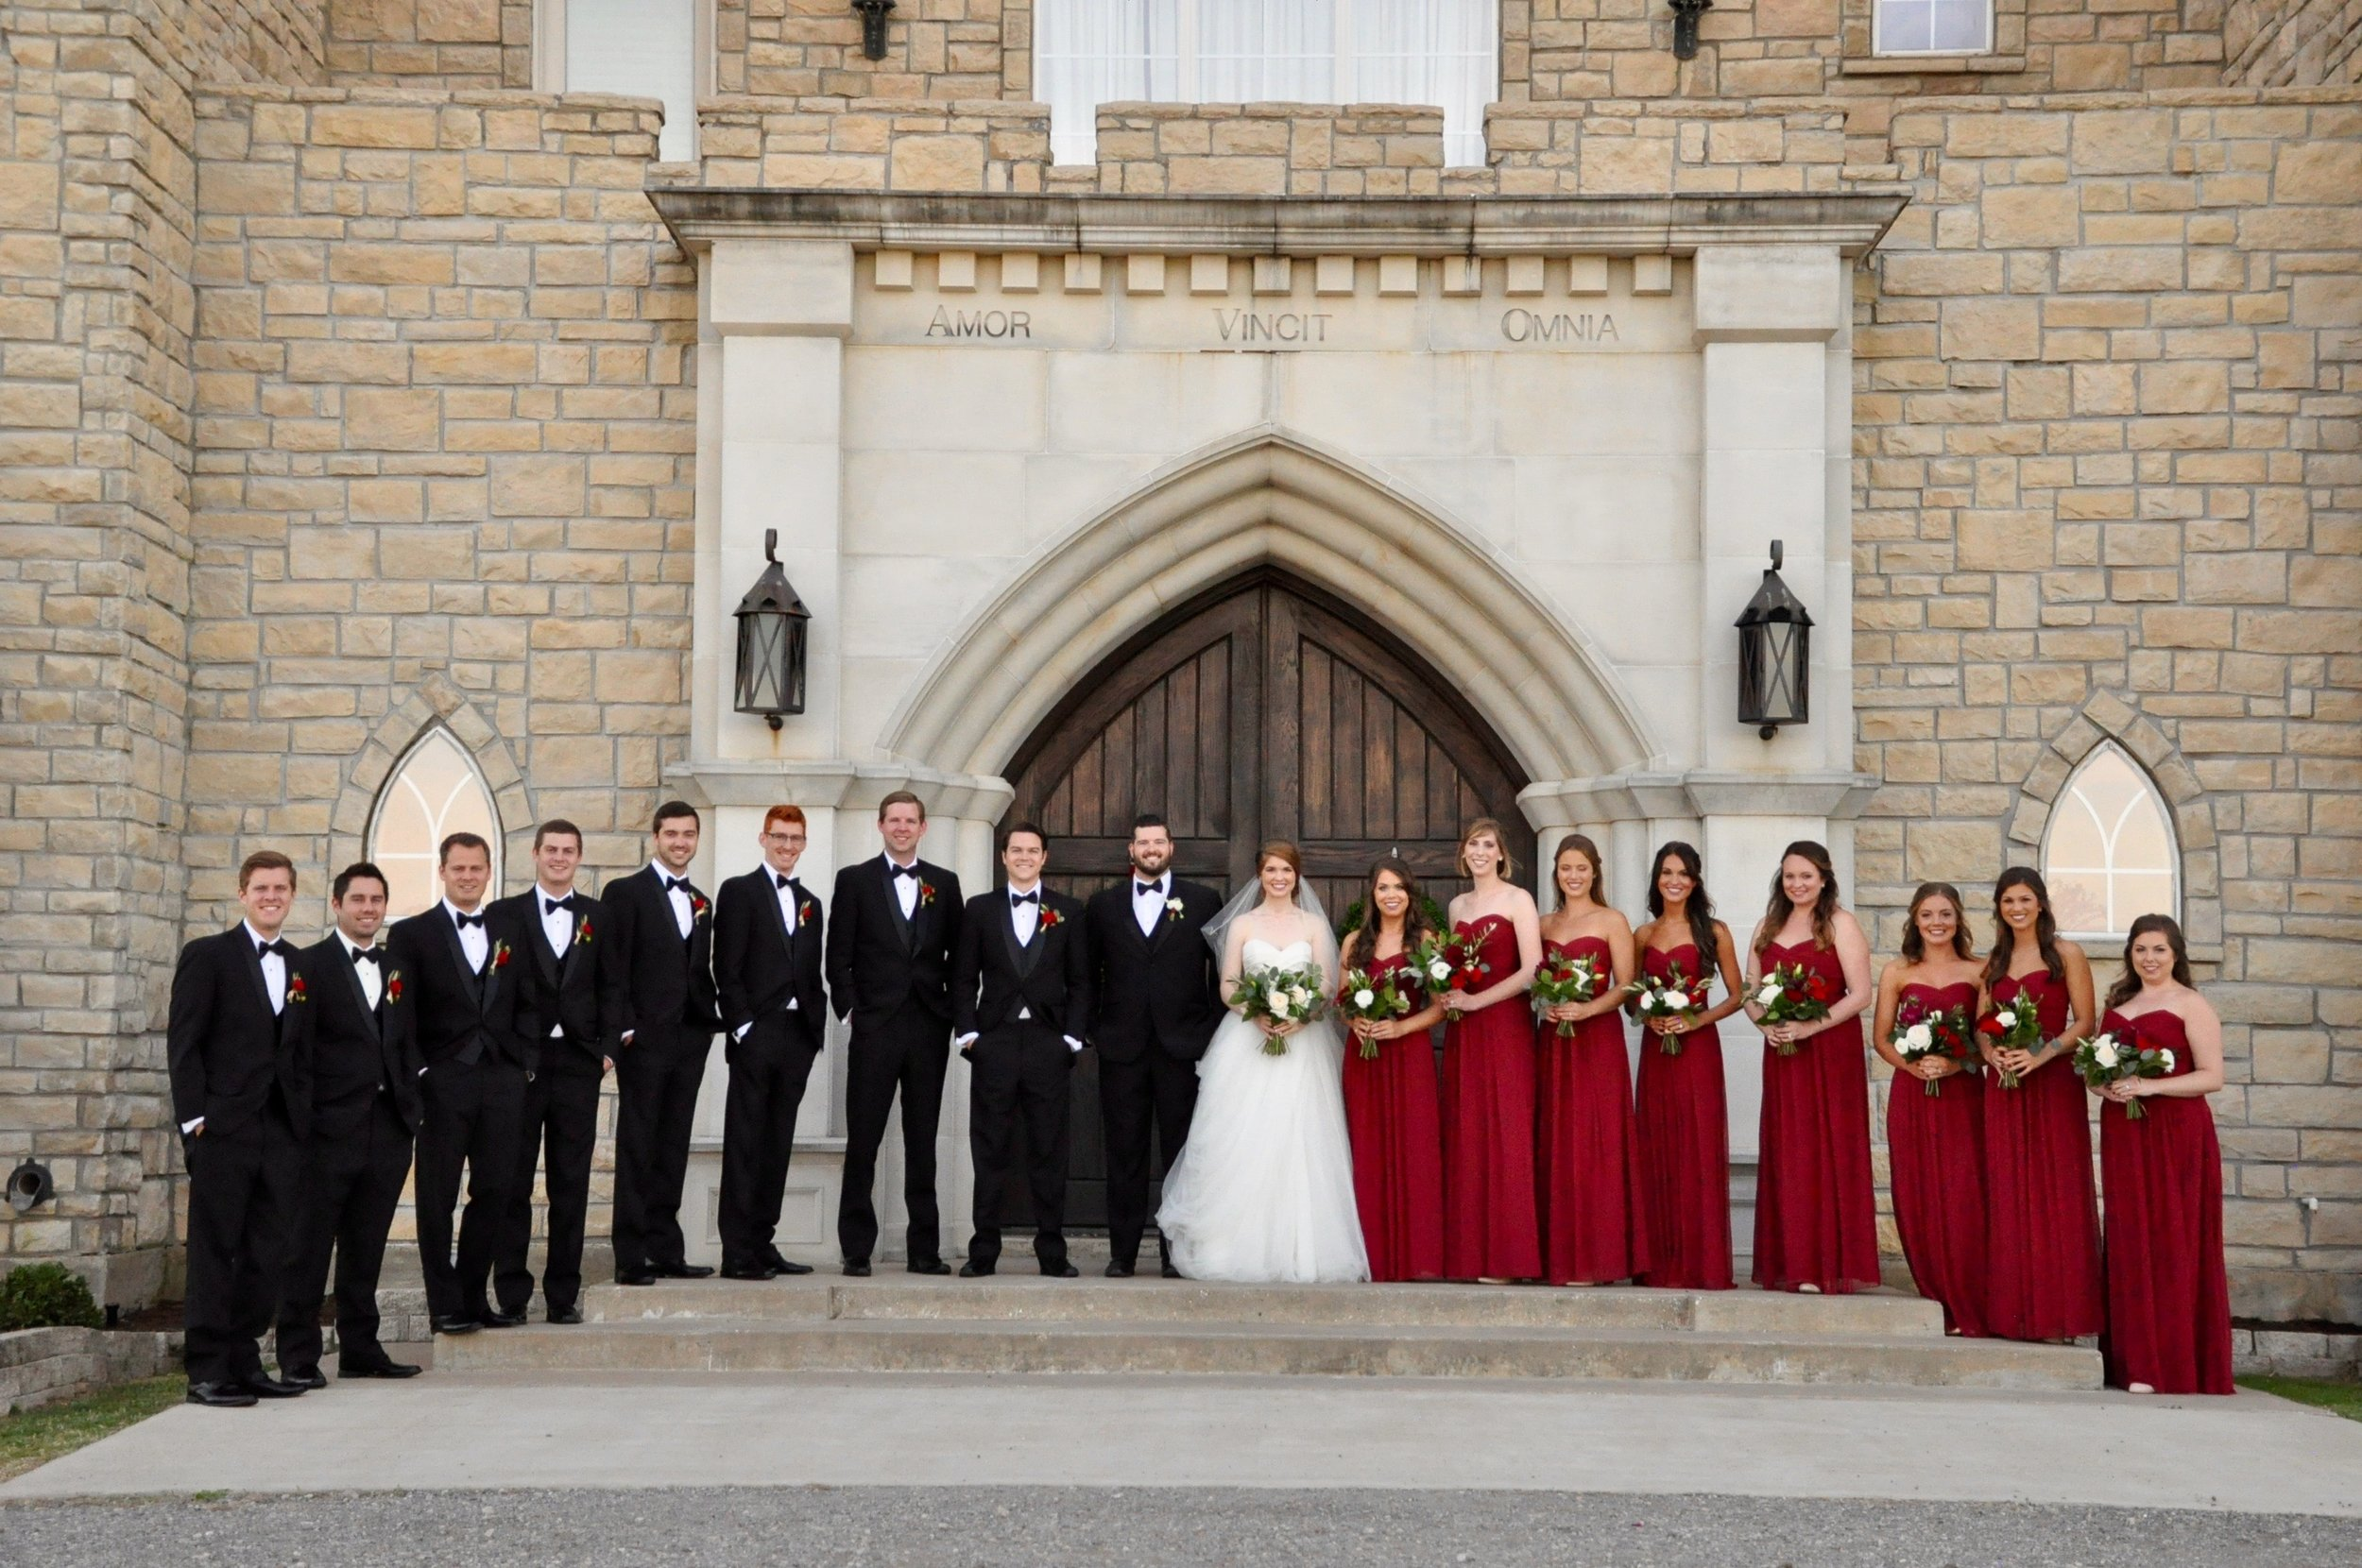 where to get tuxedos for your groomsmen, online tuxedo company, menguin, wedding, bridal tips, wedding guide, dallas wedding, the castle at rockwall, heidi lockhart somes